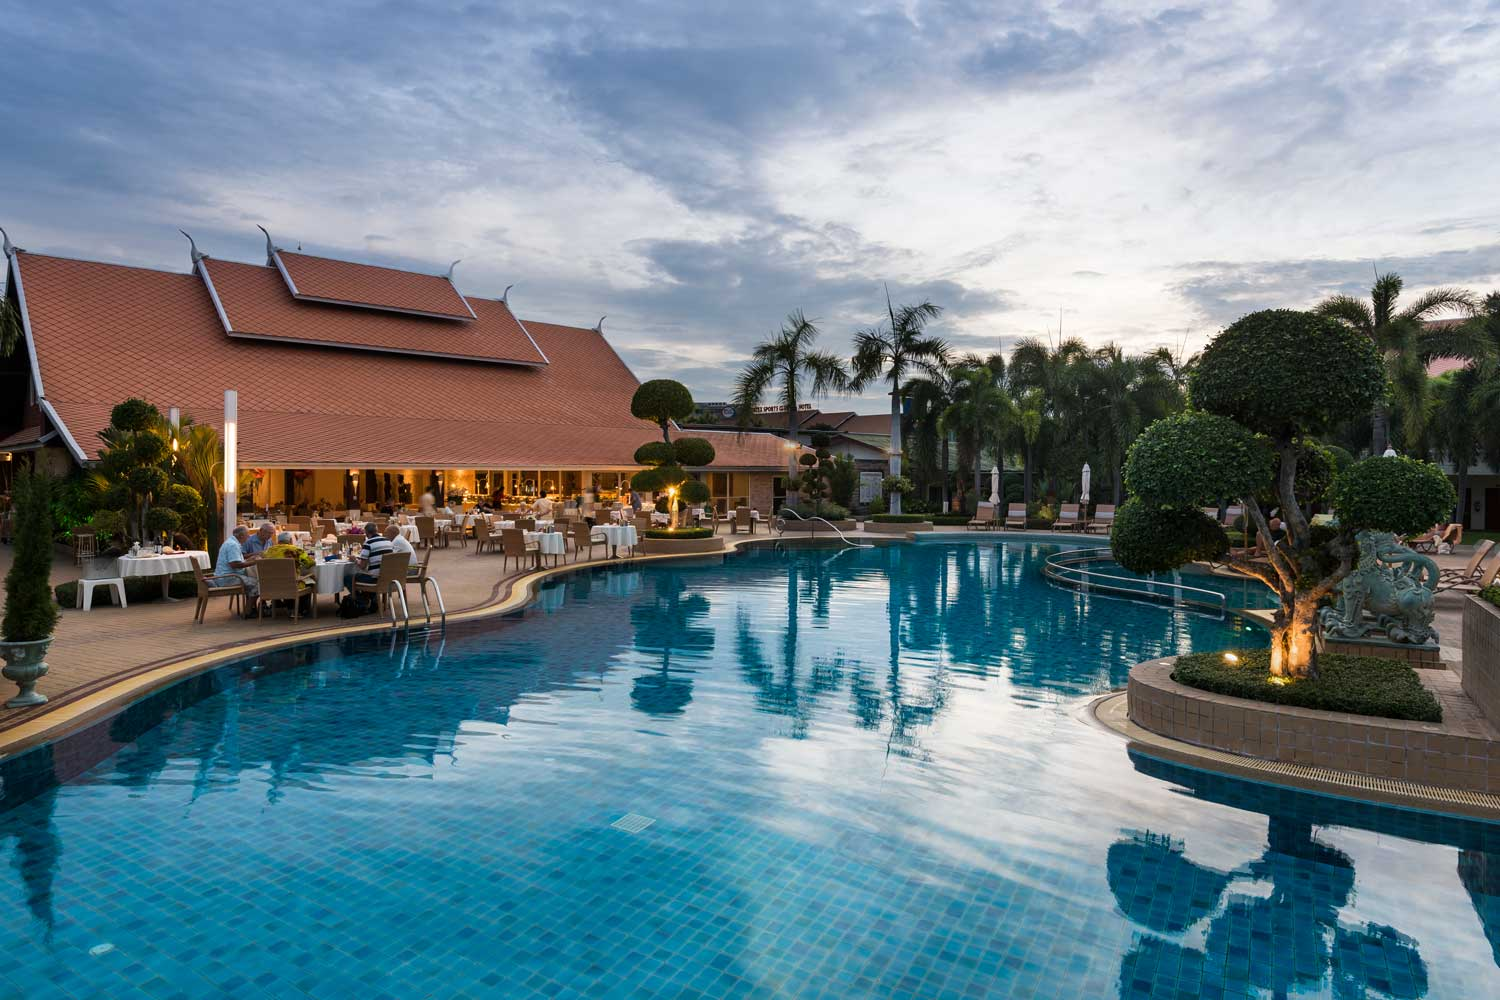 Oasis Restaurant and Lagoon Pool Thai Garden Resort Pattaya, Thailand